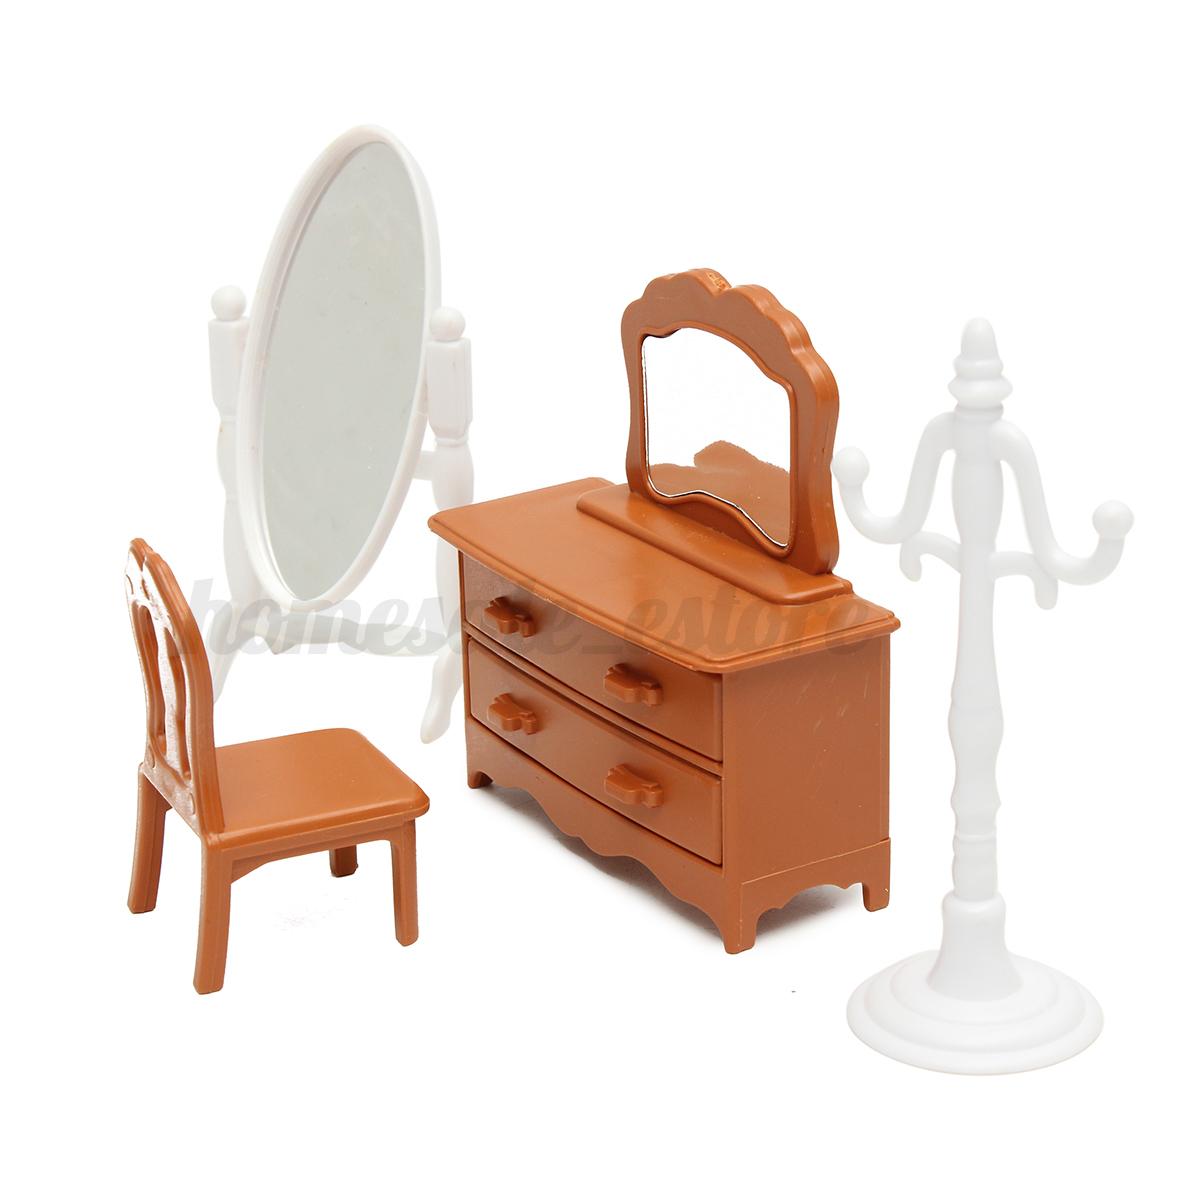 Come forum vintage plastic dollhouse furniture you has